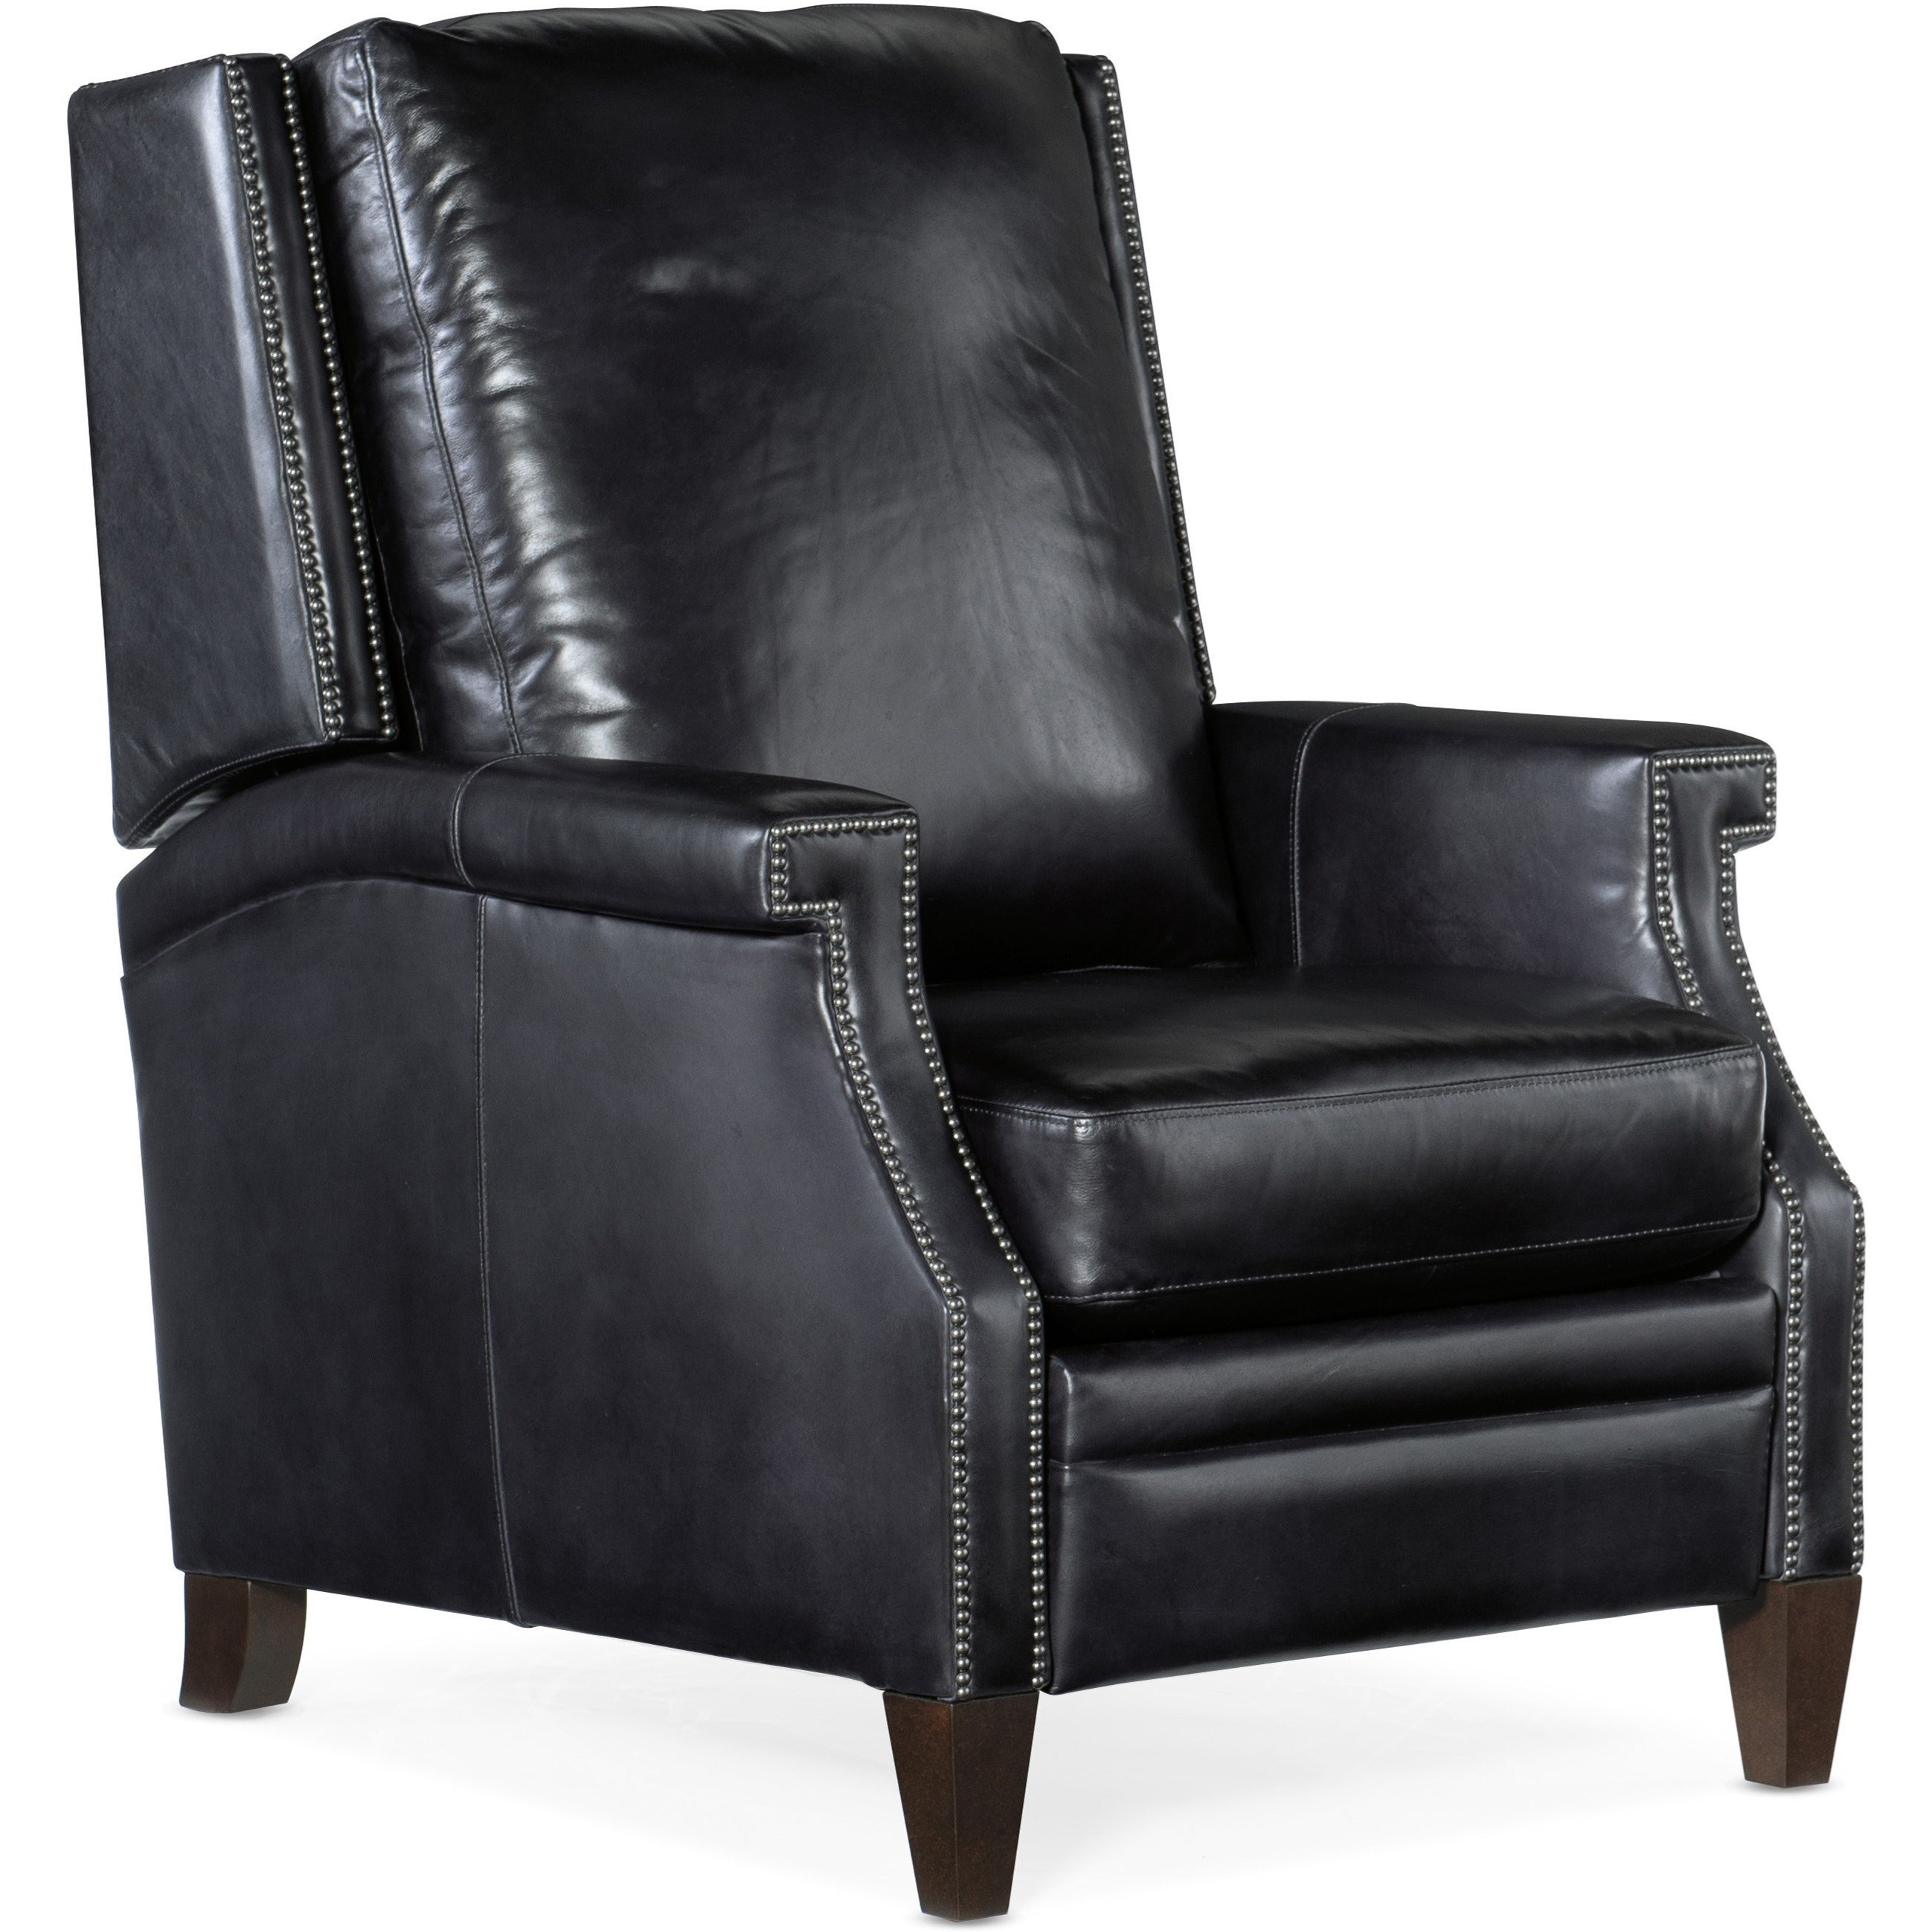 Collin Push Back Leather Recliner by Hooker Furniture at Johnny Janosik